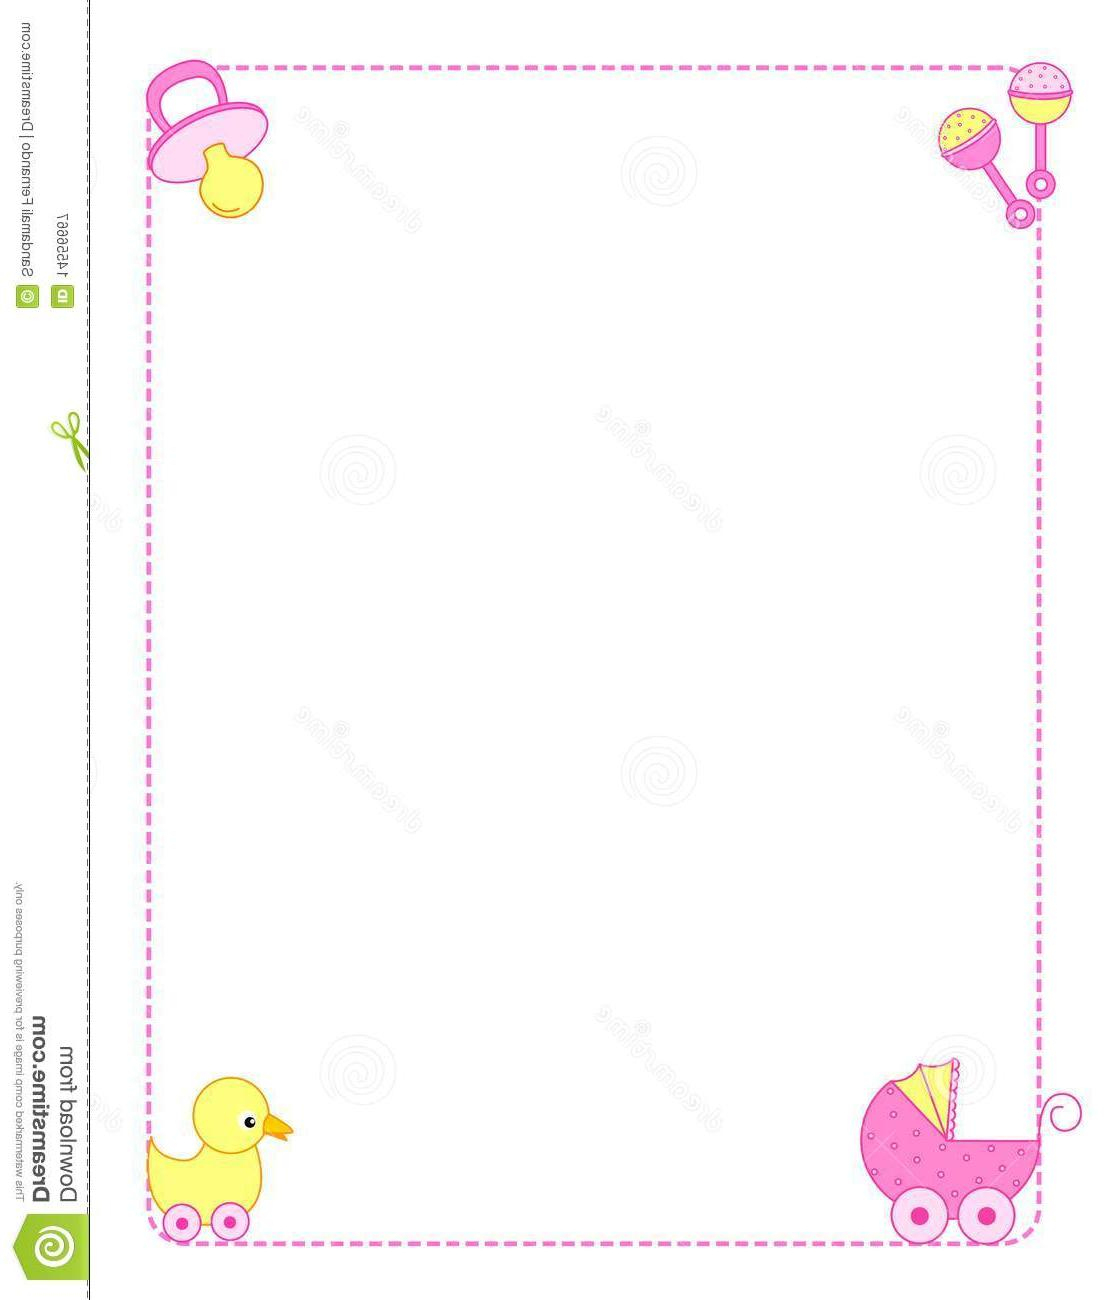 Best Free Printable Baby Borders For Paper Border Clipart Pictures - Free Printable Baby Borders For Paper